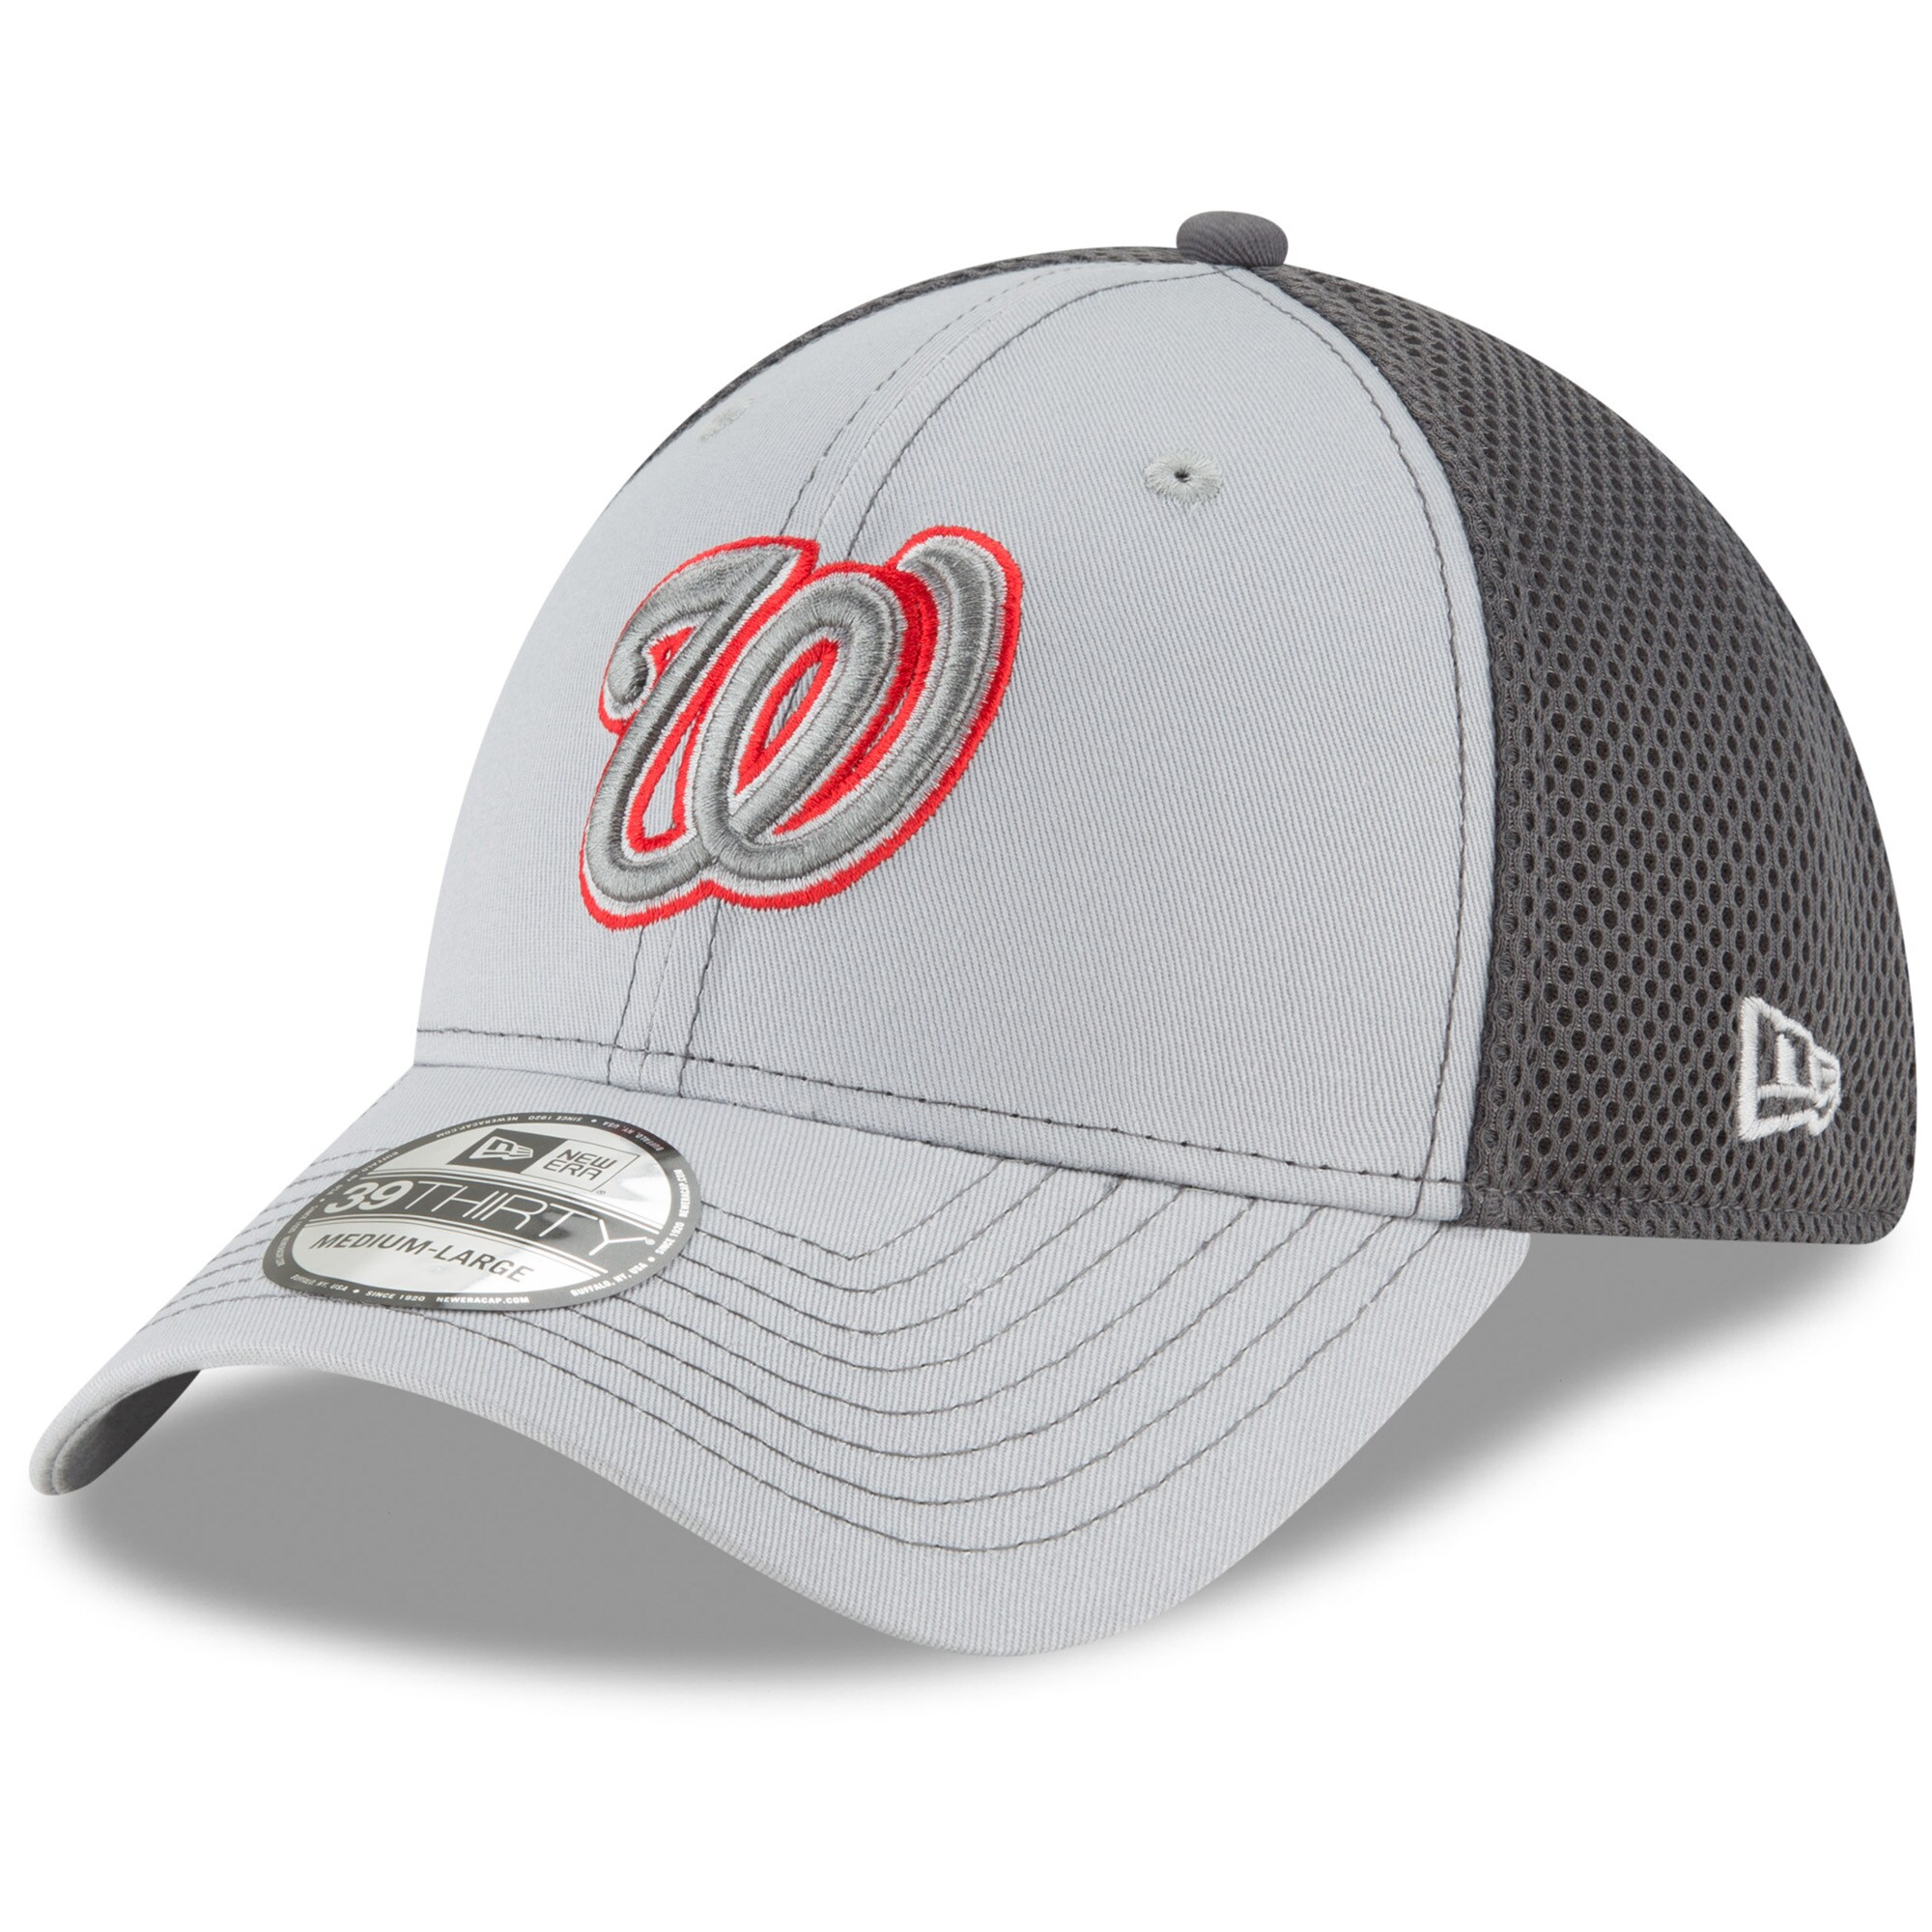 Washington Nationals New Era Grayed Out Neo 39THIRTY Flex Hat - Gray